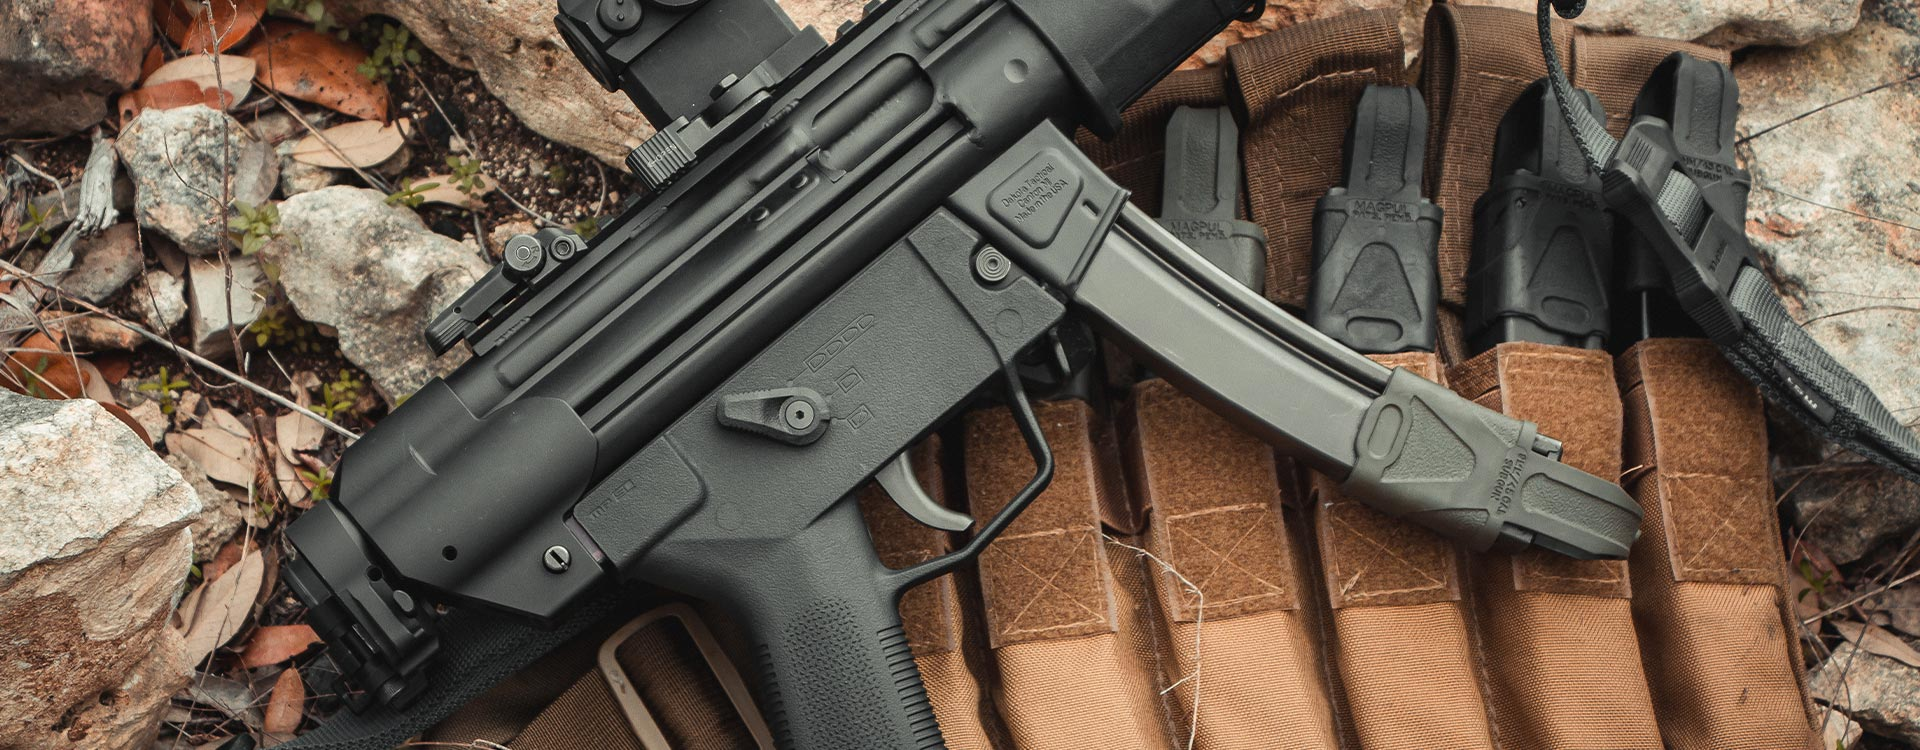 Magpul ESK on an MP5 with SL Grip Module, laying on pouch of mags with 9mm Subgun Magpuls